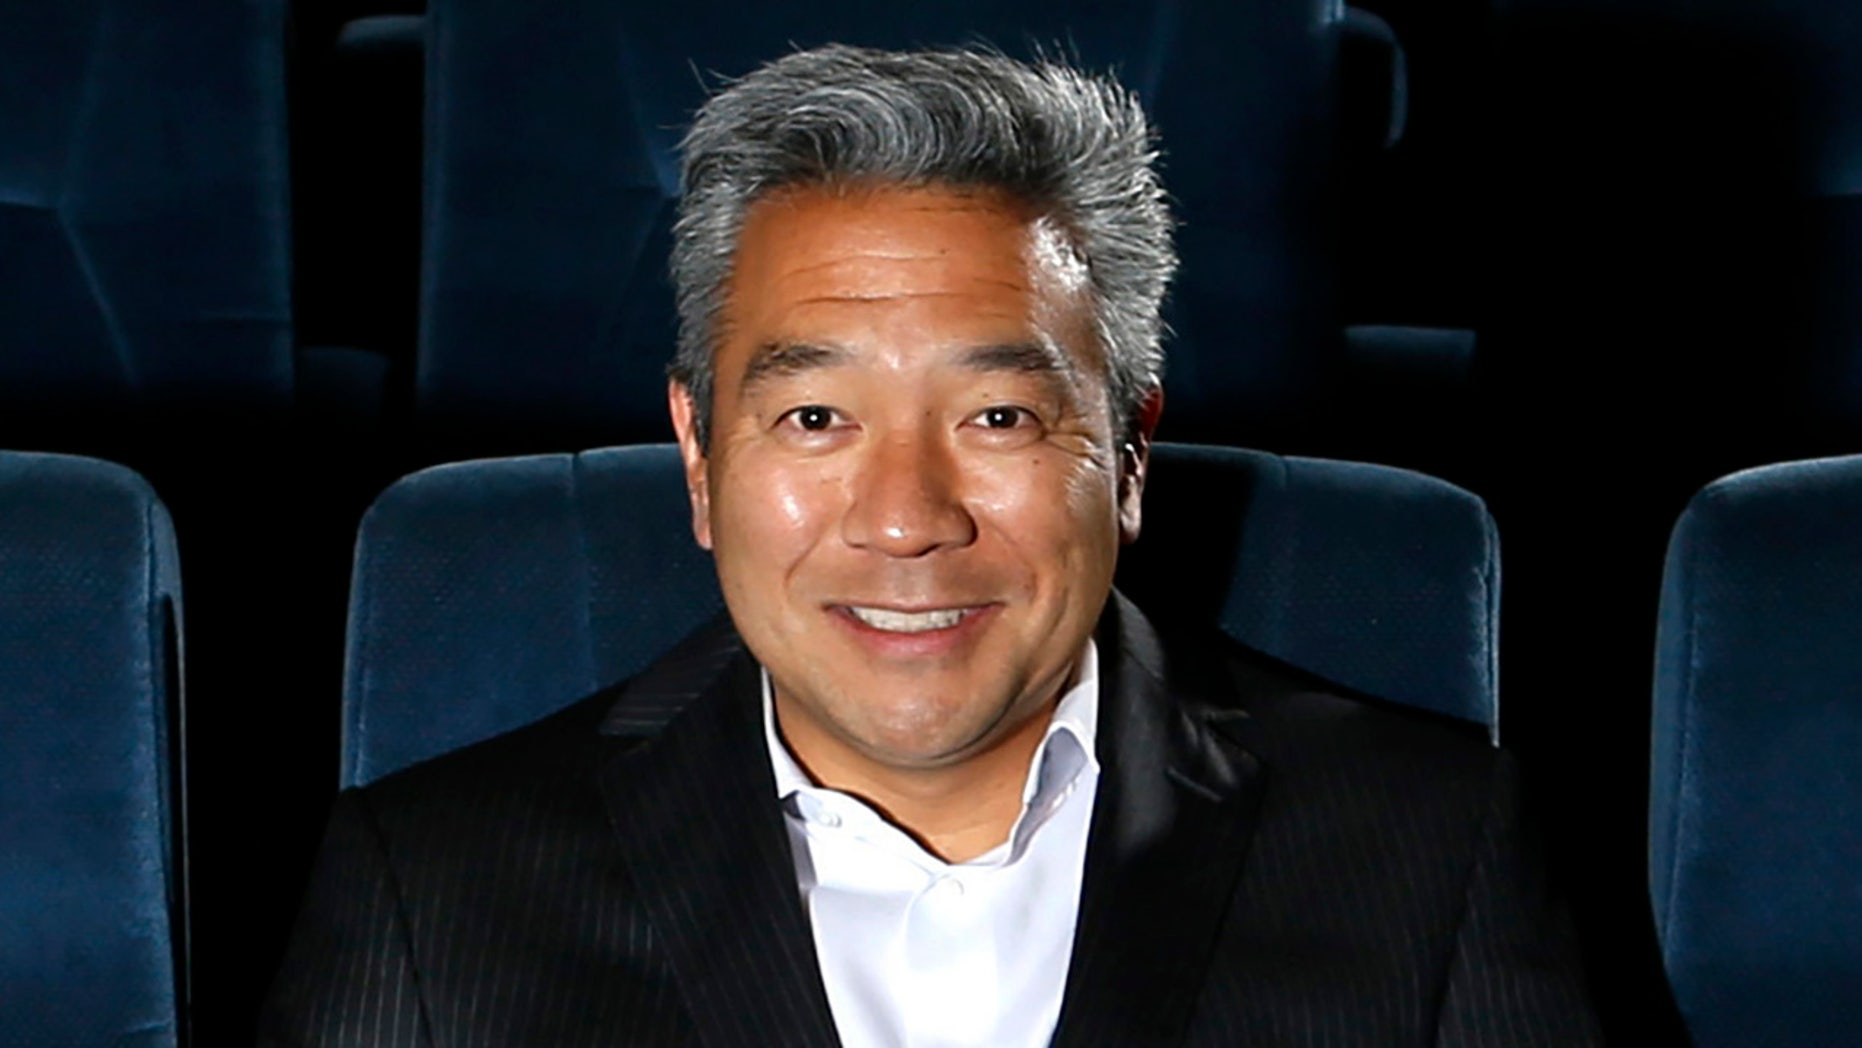 Amid a flurry of allegations and bombshell reports, Warner Bros. announced that its chairman and CEO, Kevin Tsujihara, will step down from his position at the company.